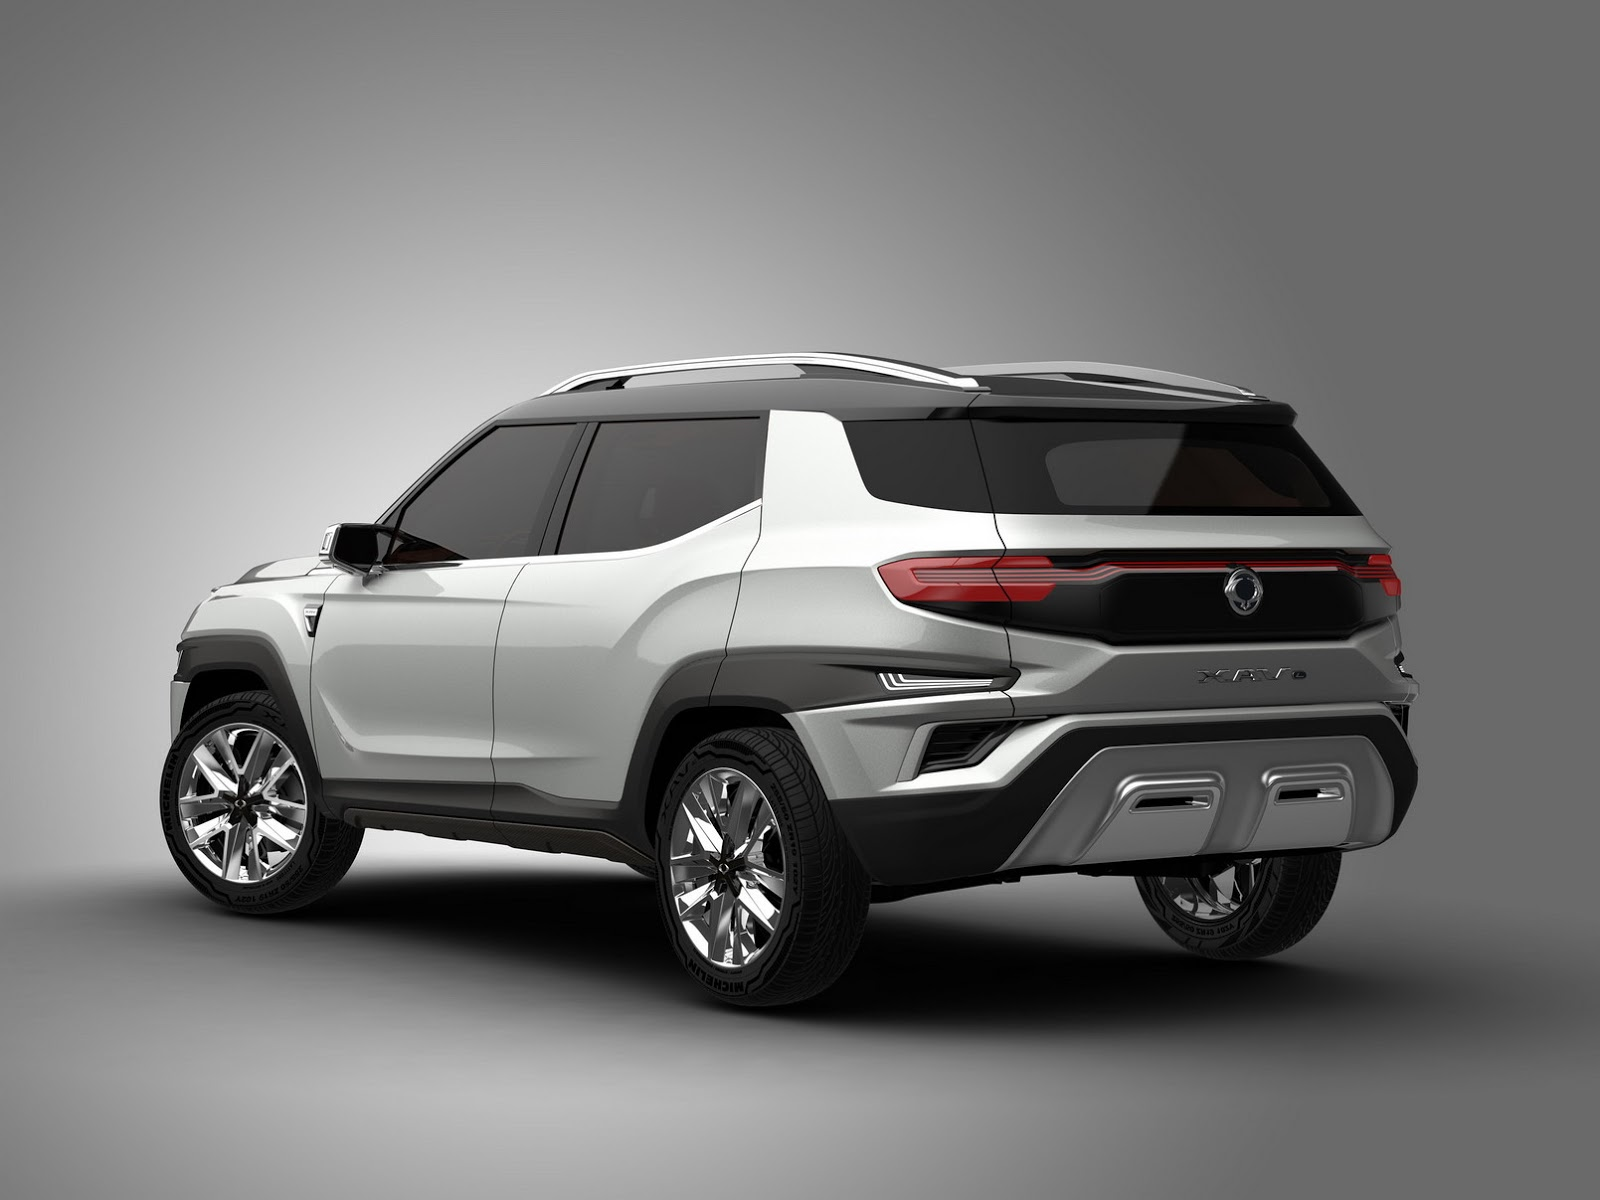 ssangyong s xavl concept will morph into a seven seater production suv. Black Bedroom Furniture Sets. Home Design Ideas